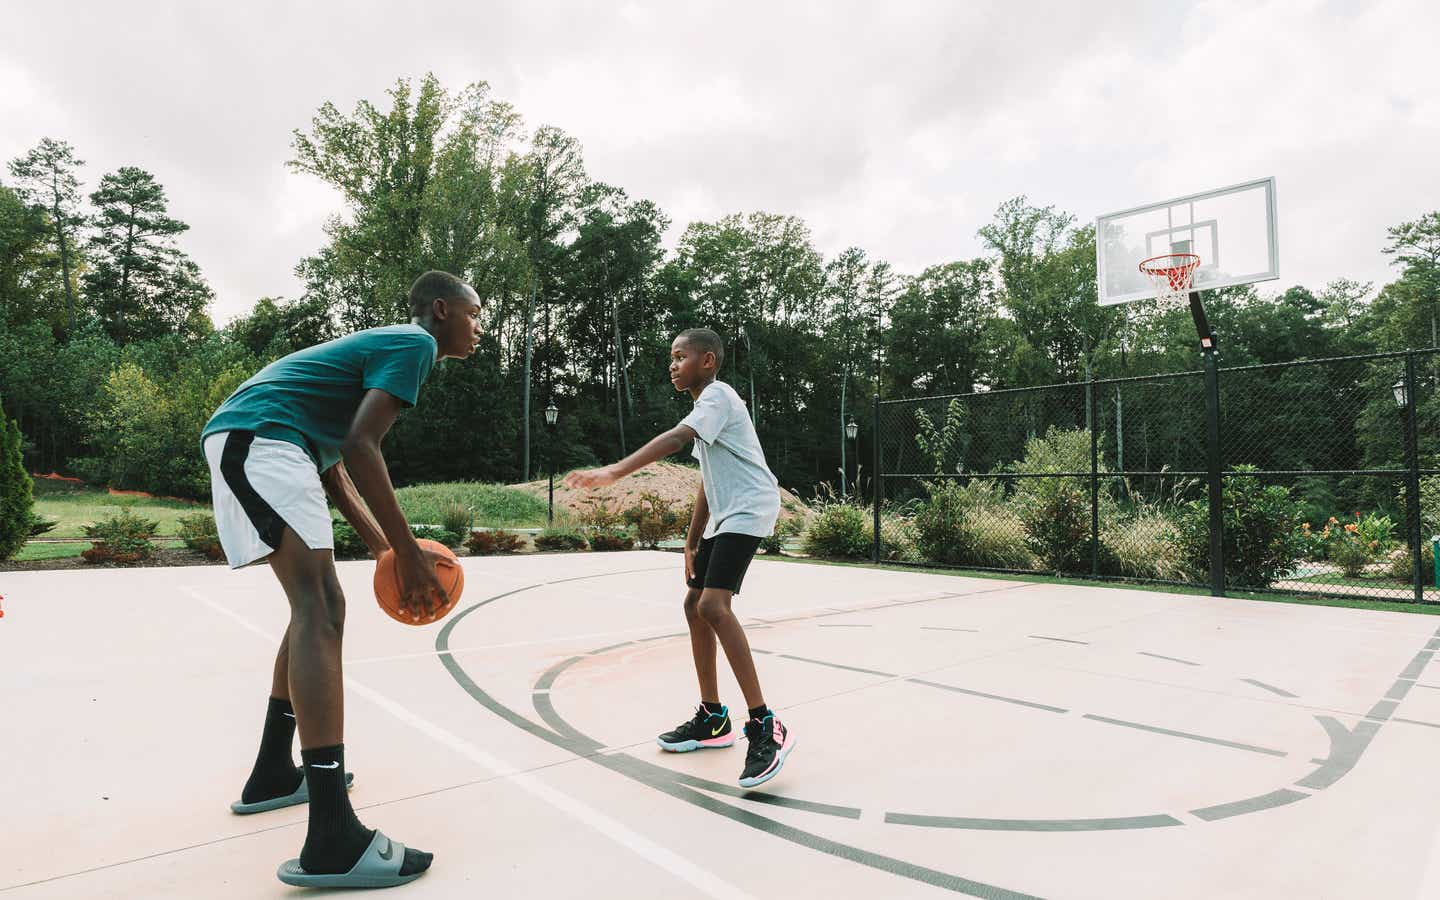 Adult and child playing basketball outdoors at Williamsburg Resort.